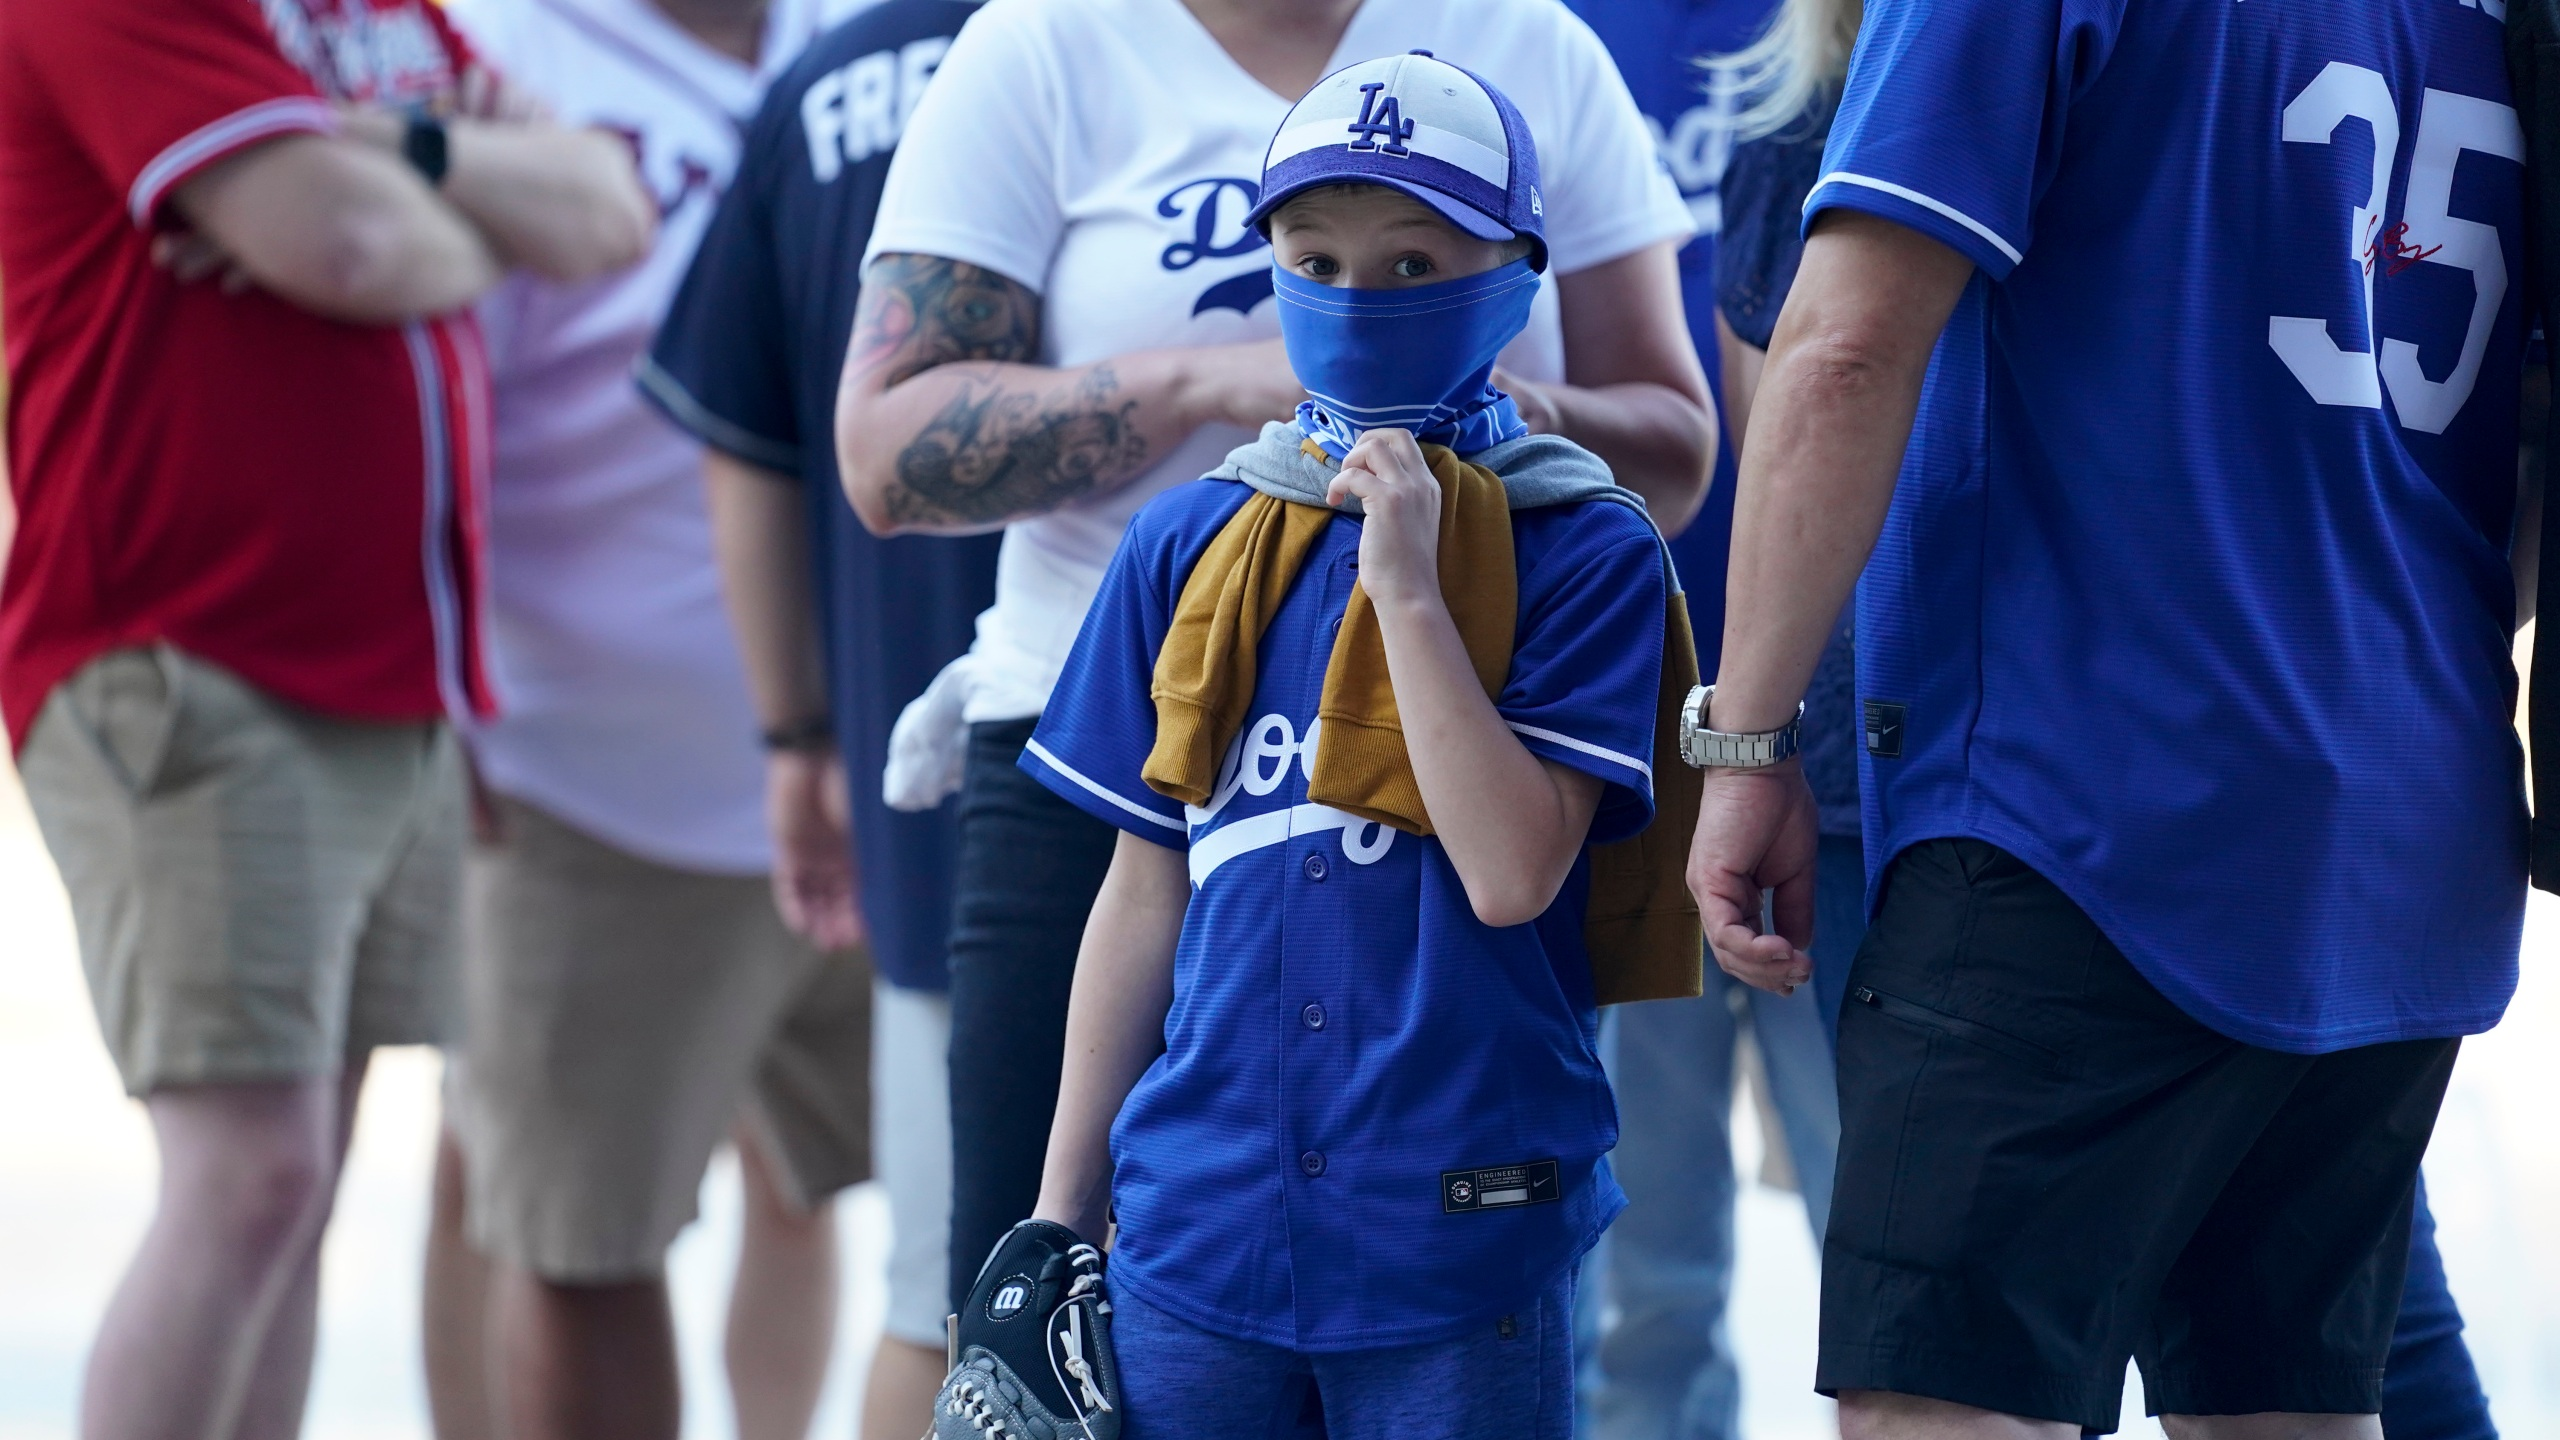 Fans arrive before Game 1 of a baseball National League Championship Series between the Los Angeles Dodgers and the Atlanta Braves on, Oct. 12, 2020, in Arlington, Texas. (AP Photo/Eric Gay)